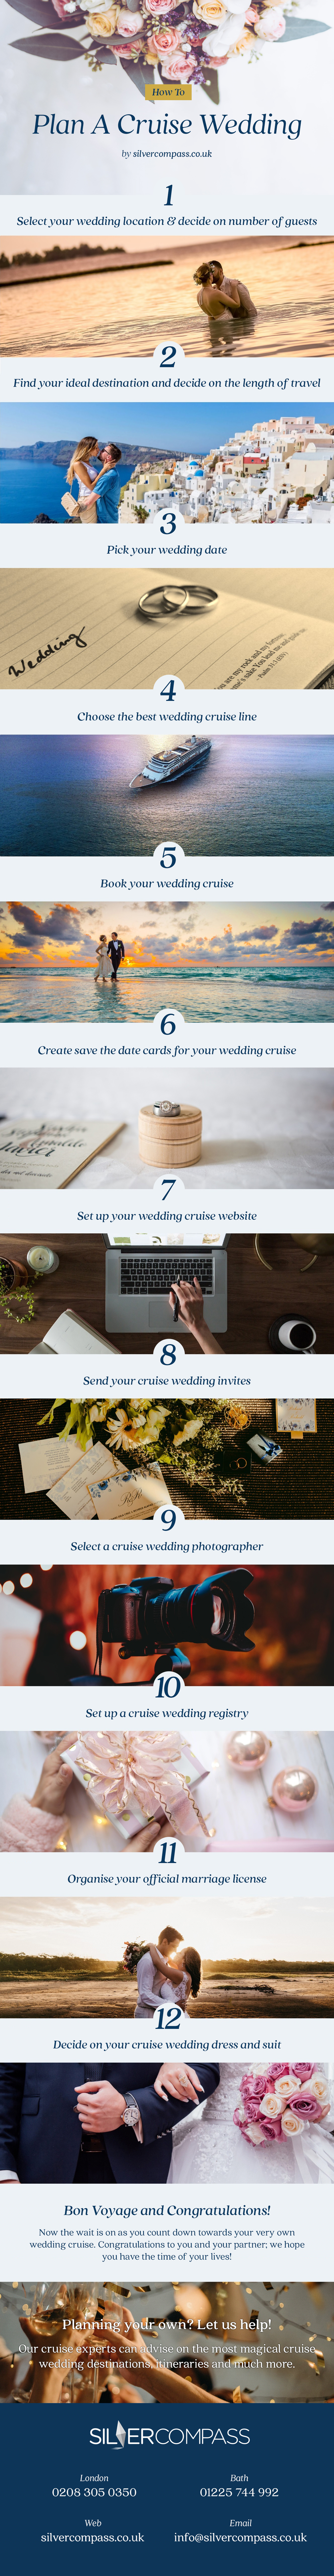 How To Plan A Cruise Wedding by Silver Compass